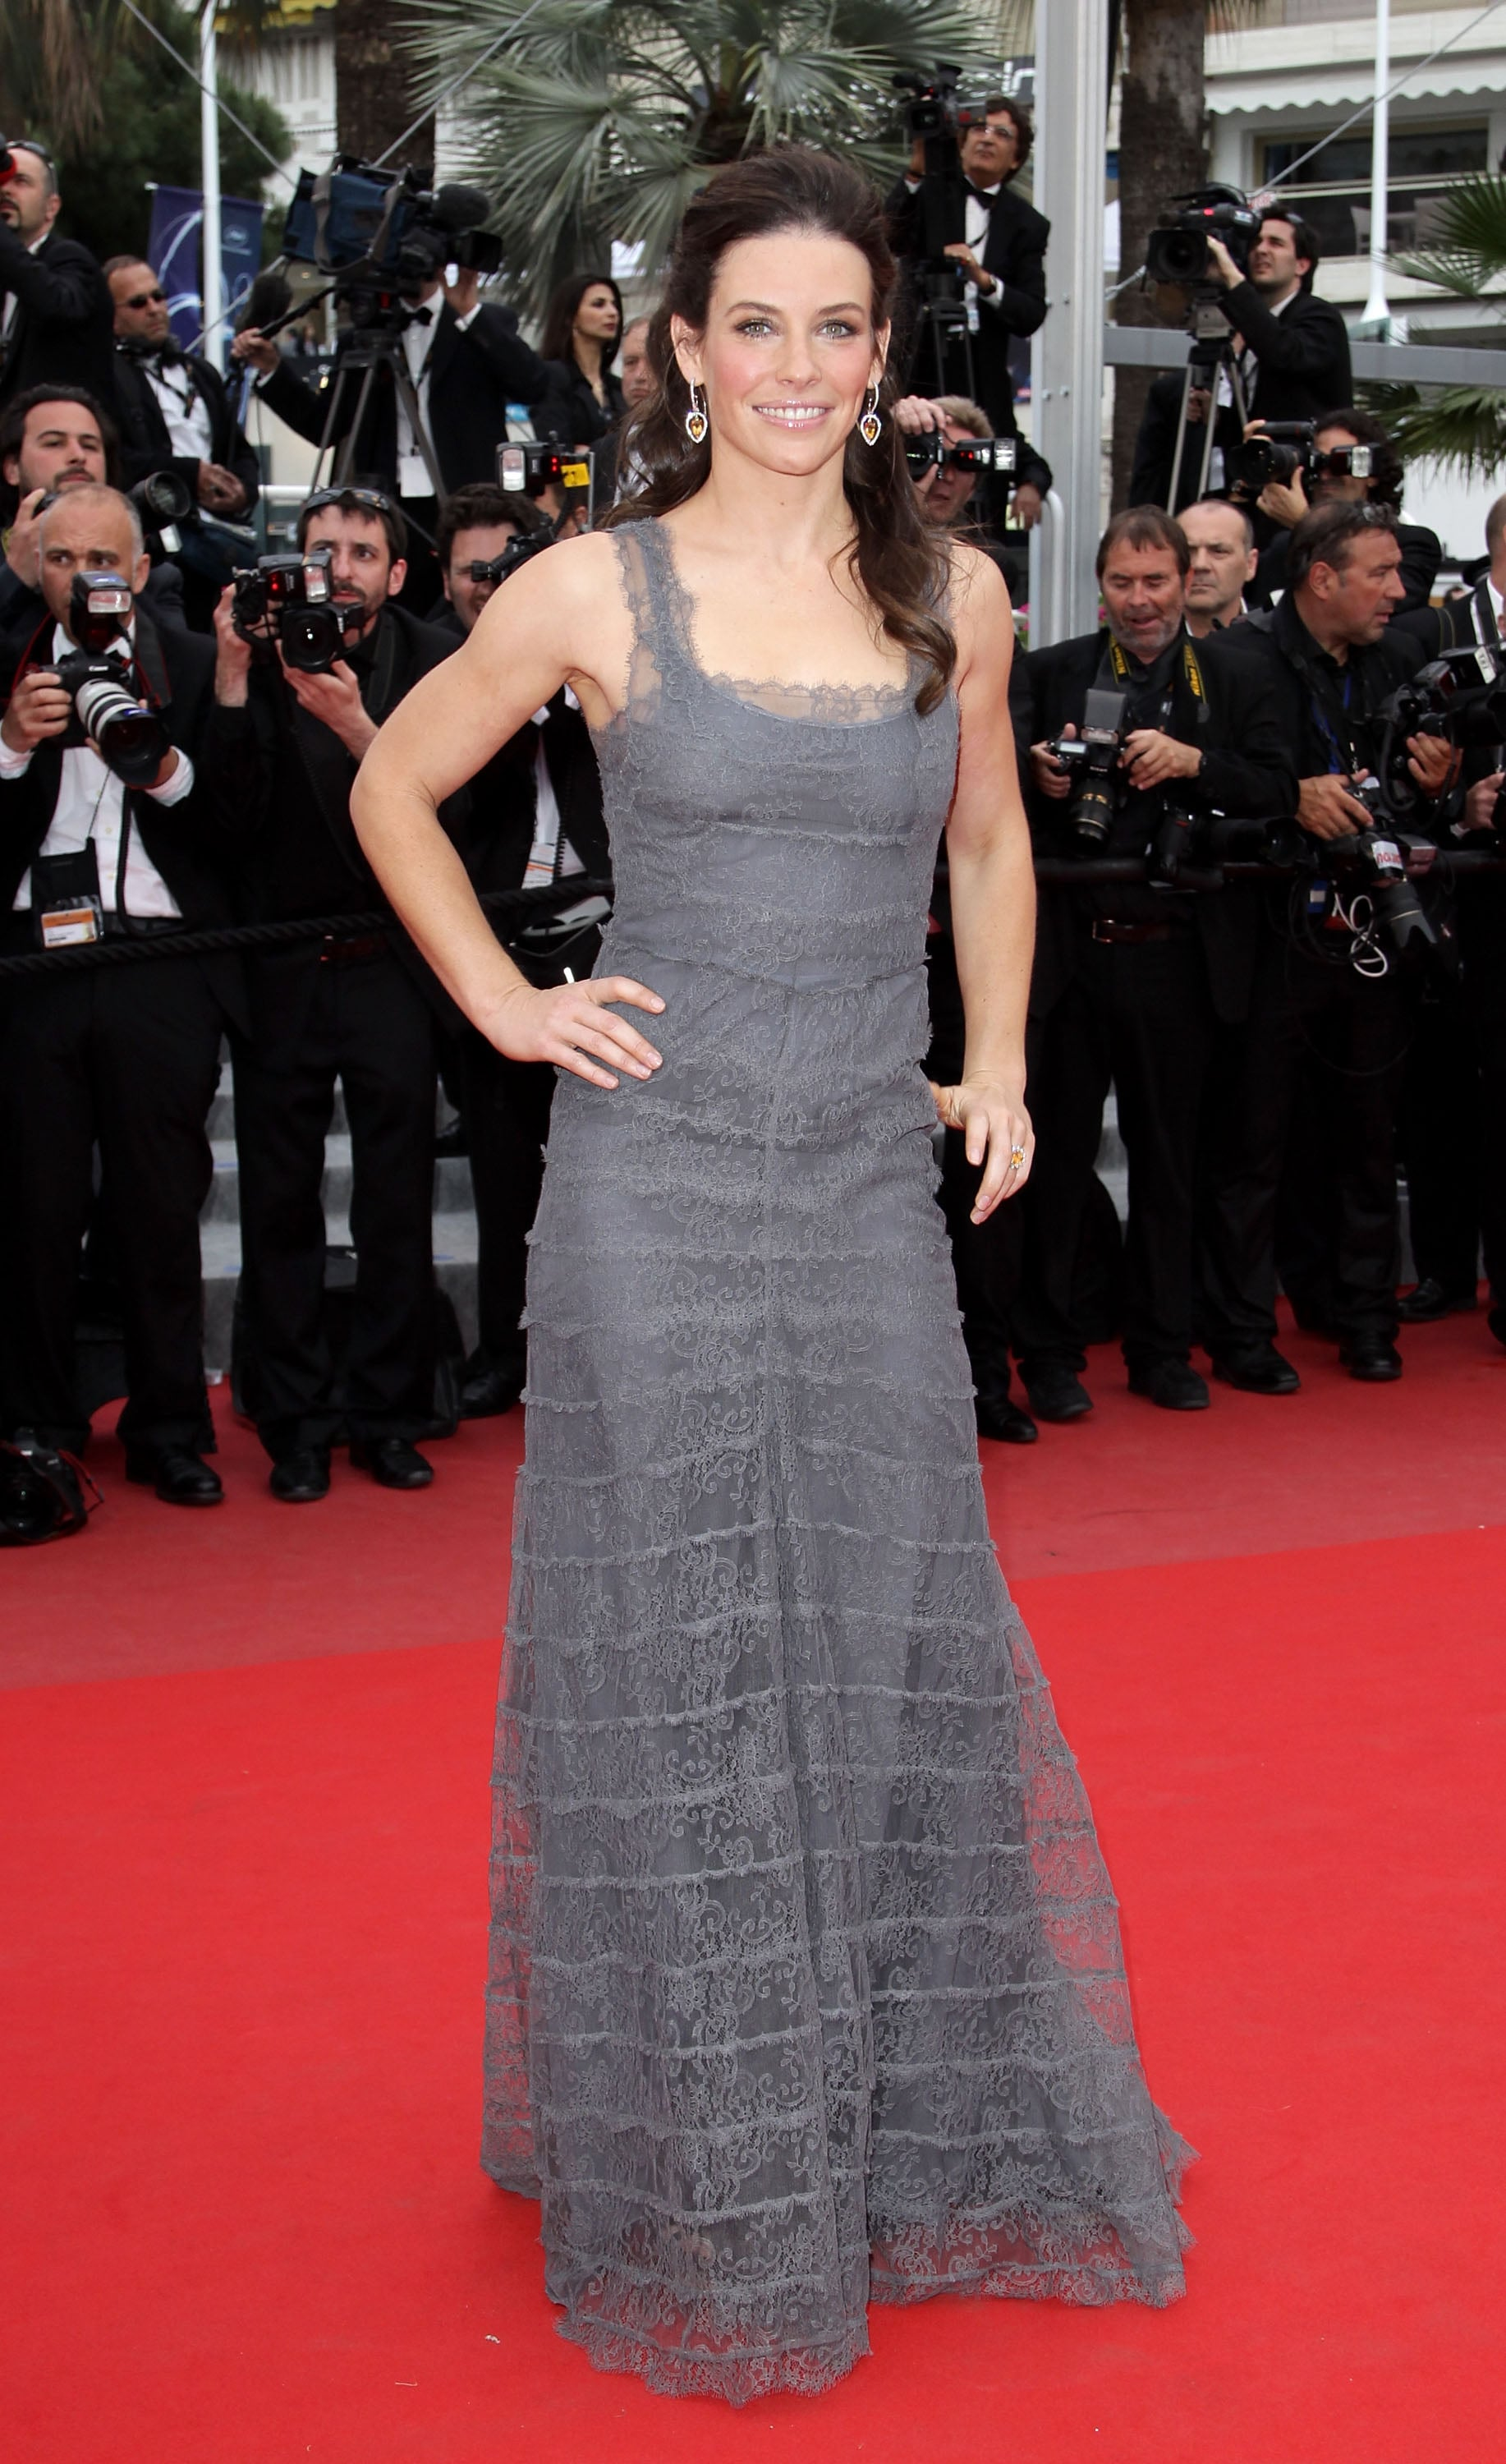 Pictures From The Red Carpet At The Cannes Film Festival